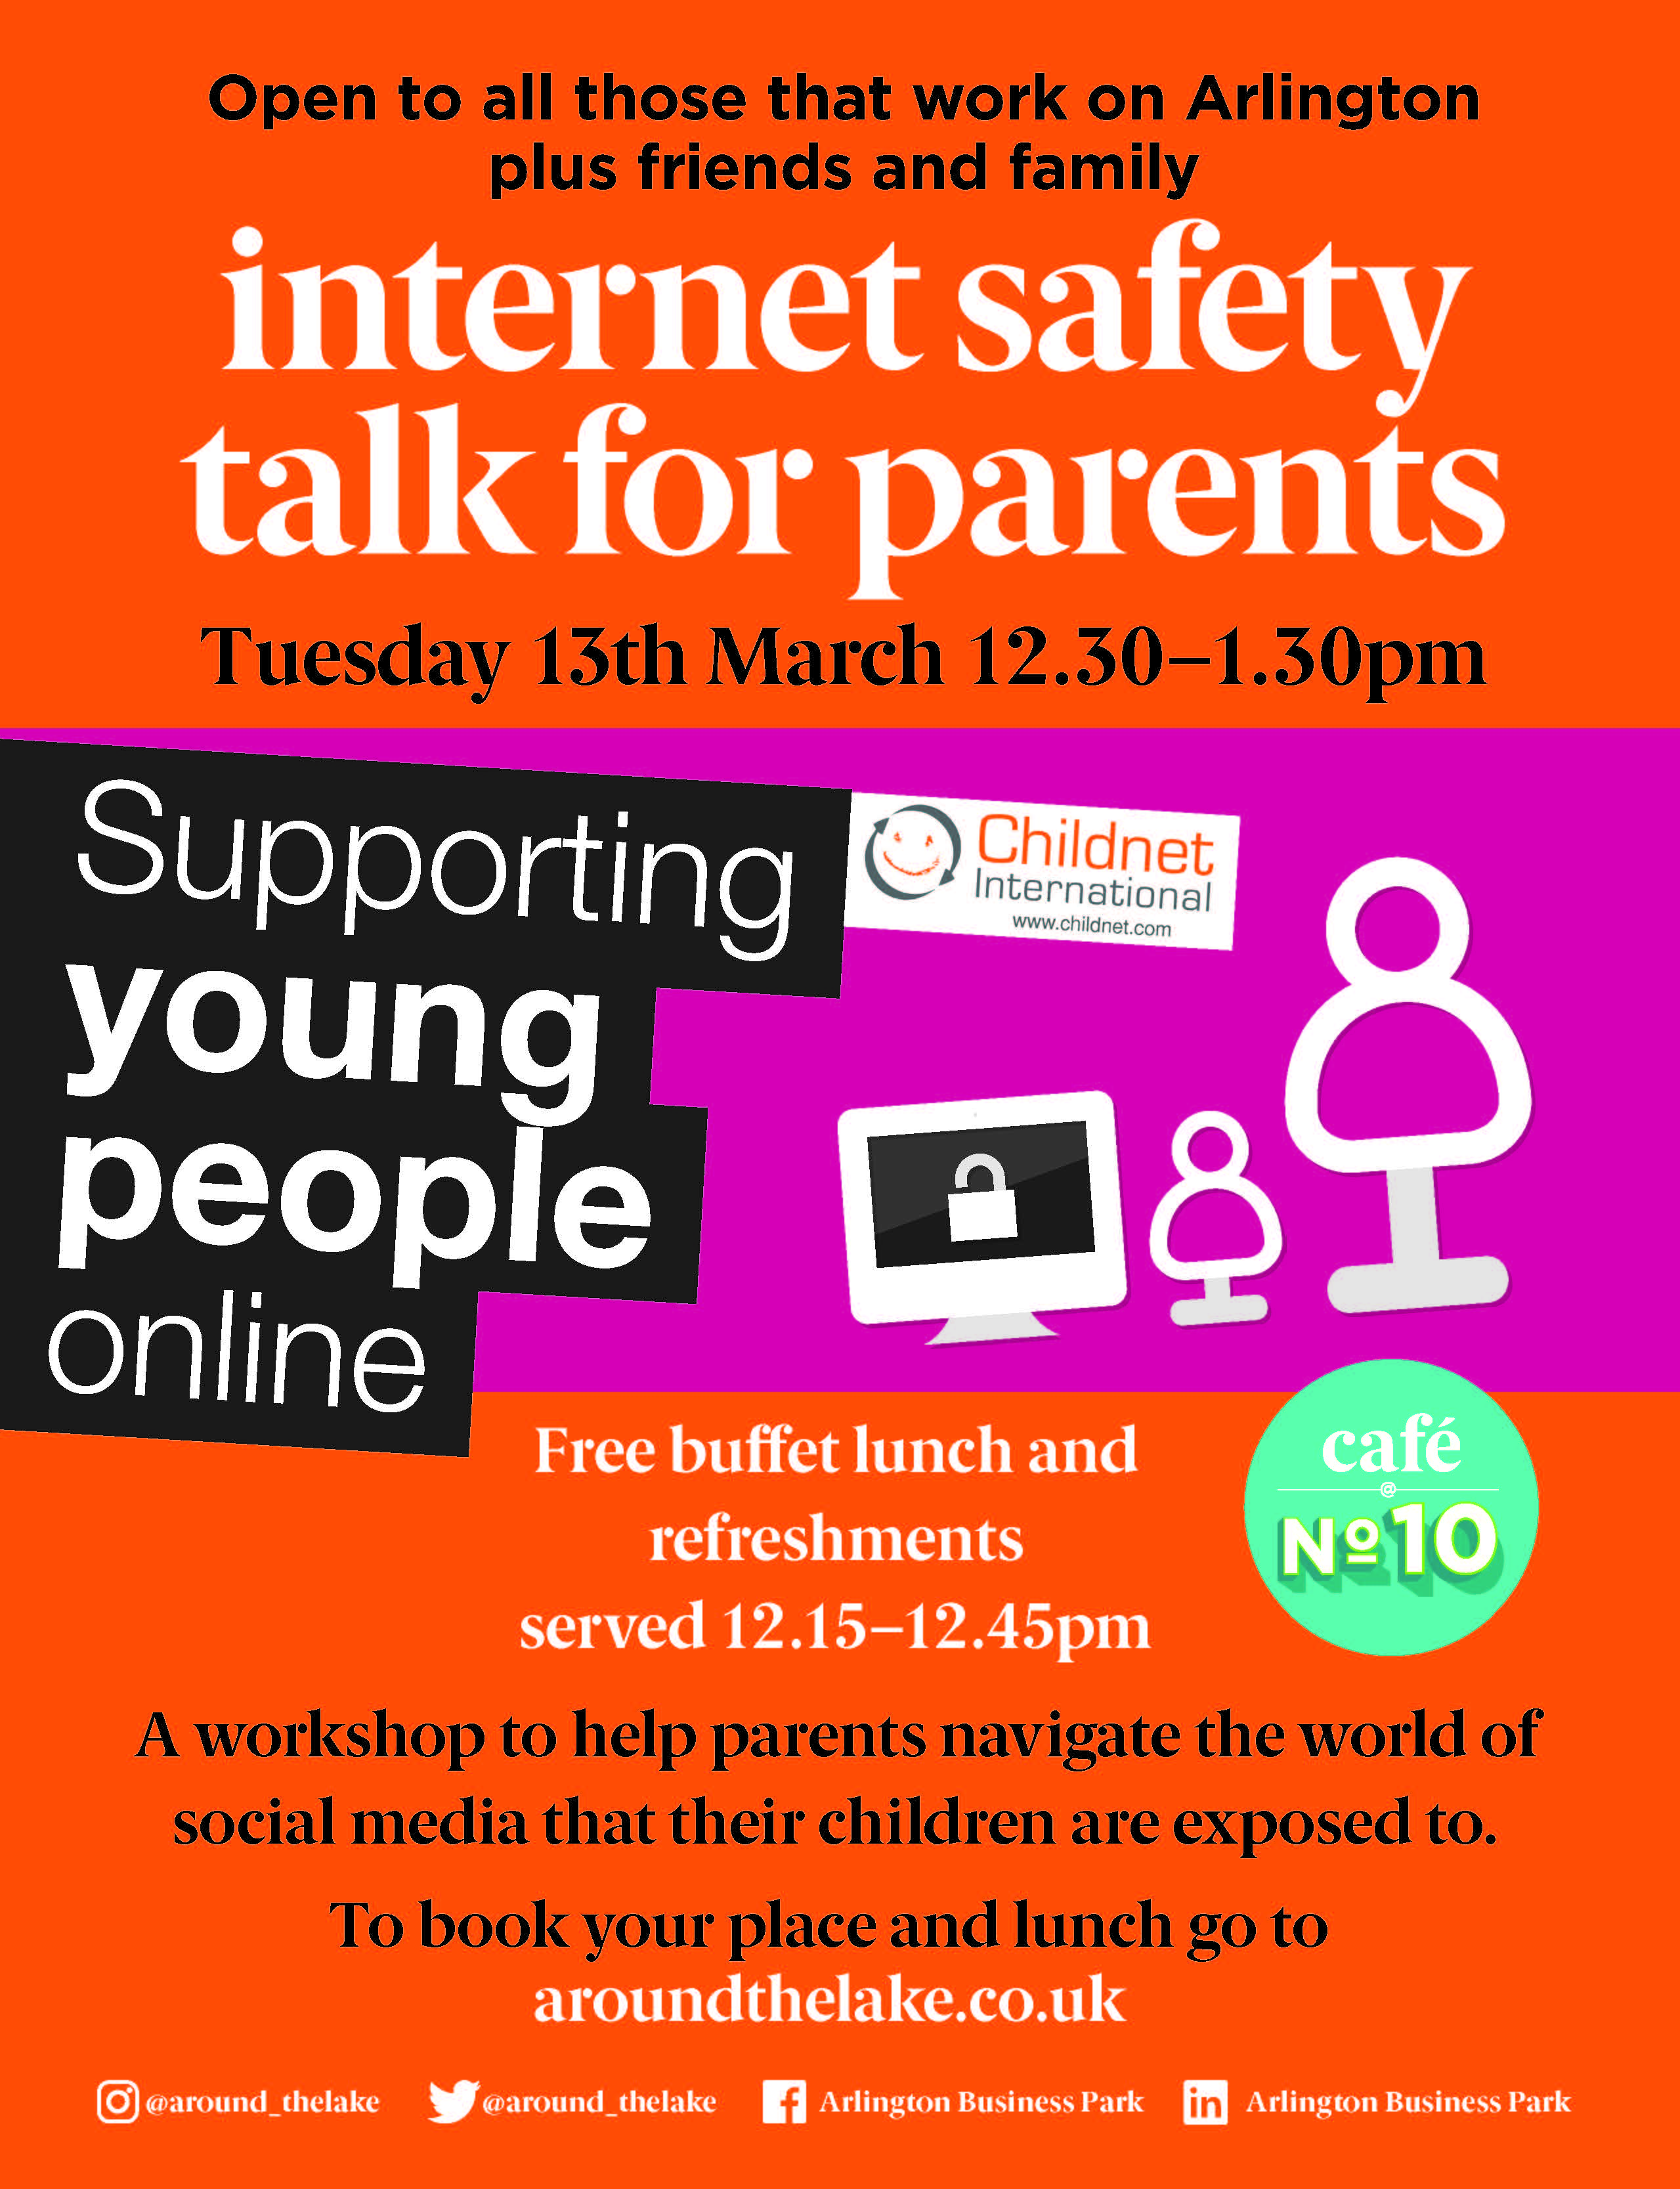 free internet safety talk for parents 13th march 2018